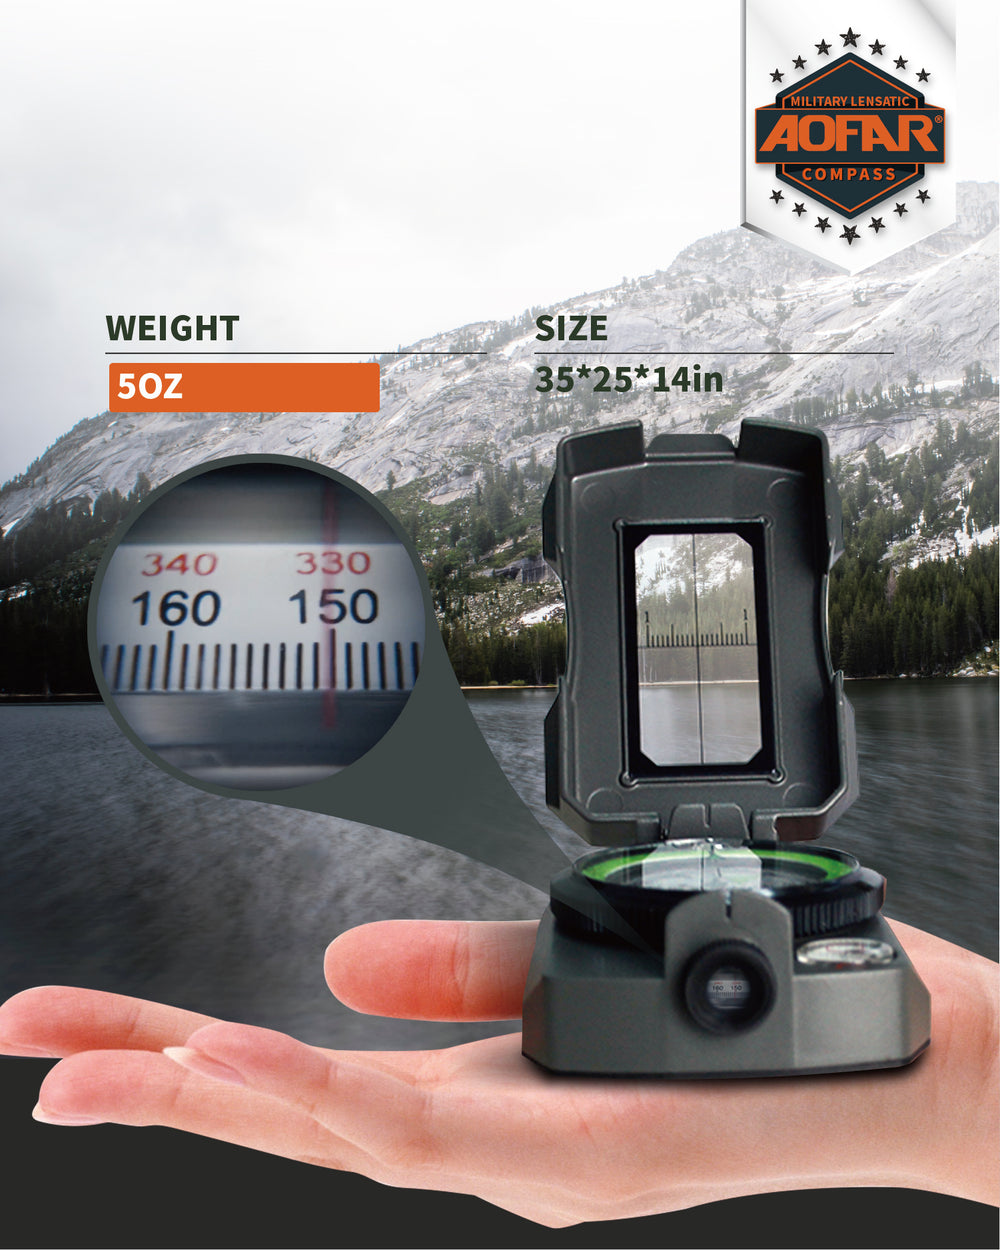 AOFAR AF-4090 Multifunctional Military Compass, Waterproof and Shakeproof with Signal Mirror,Whistle,Fishing Hook and Line for Camping,Boy Scount,Geology Activities Boating